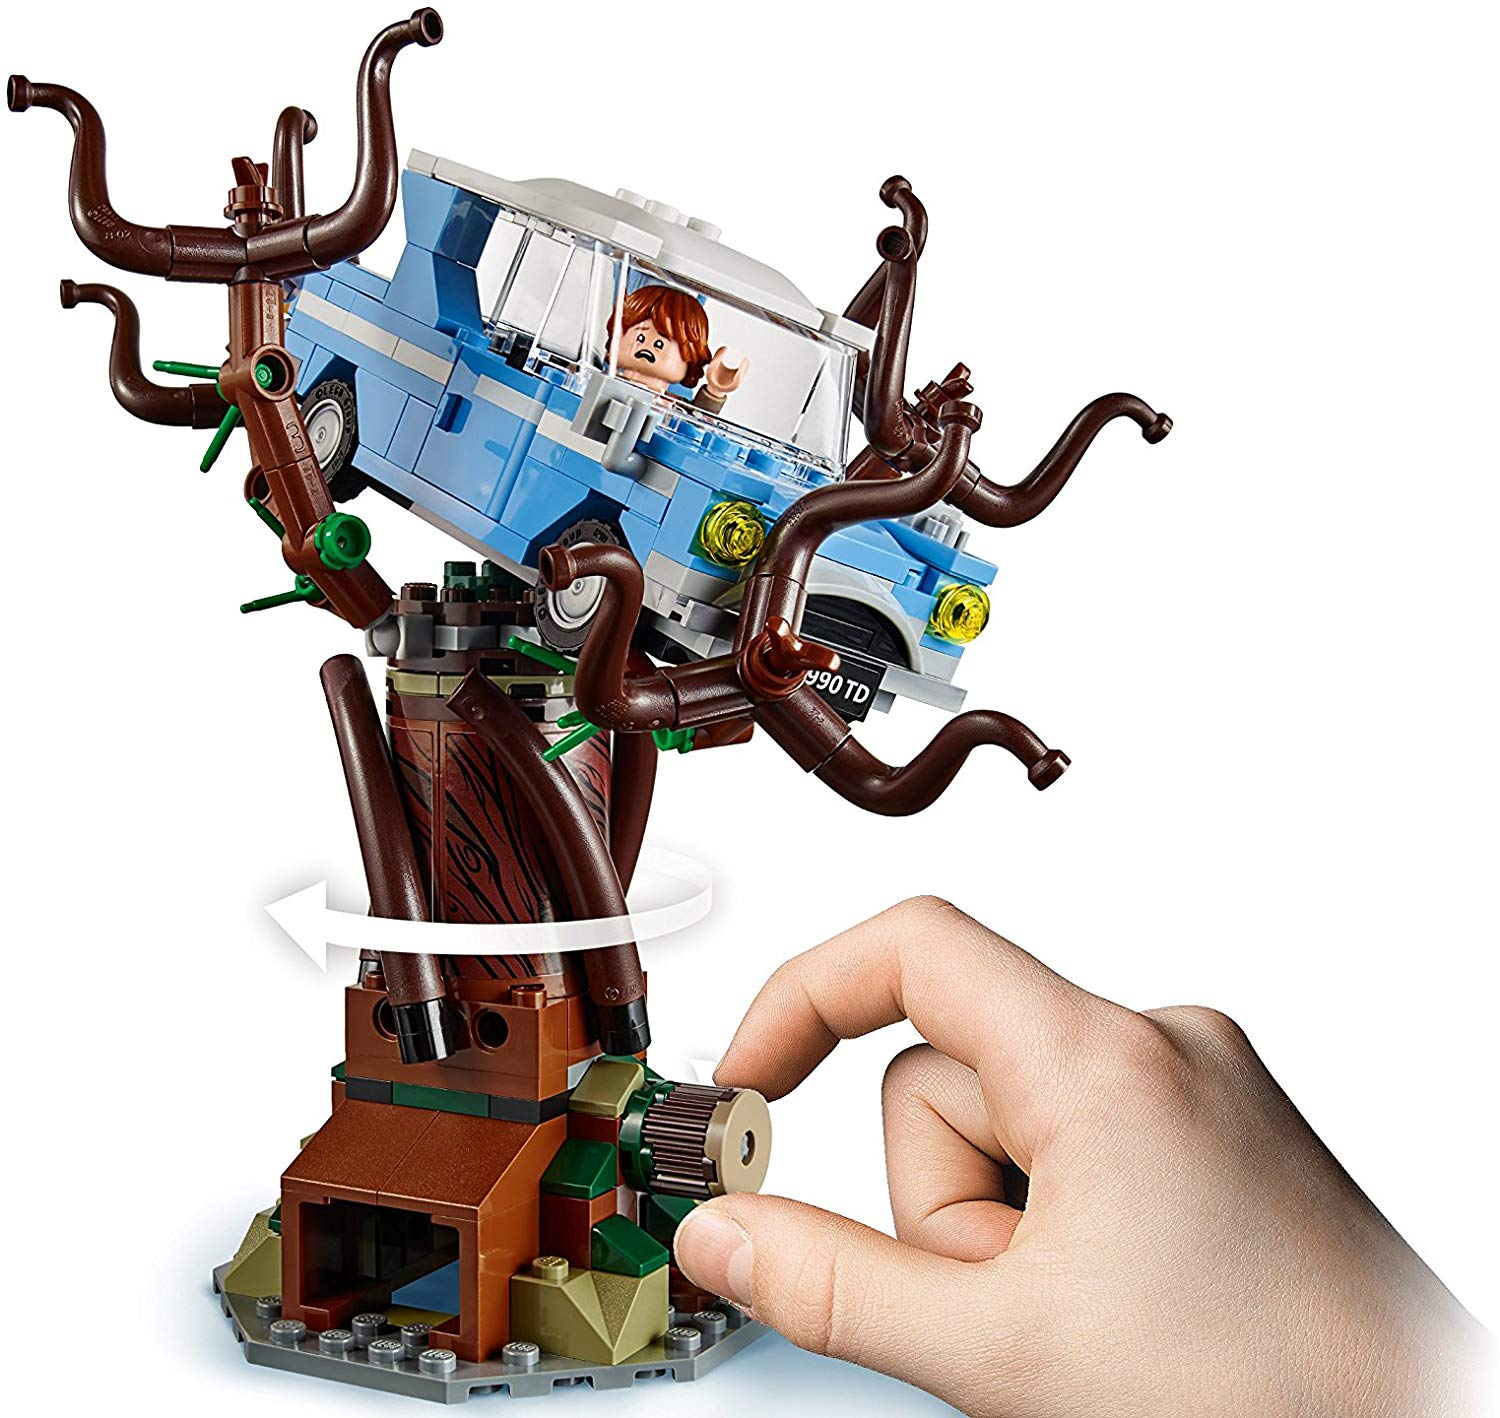 Lego Harry Potter Minifigures Hogwarts Whomping Willow 75953 Snape Filch Weasley